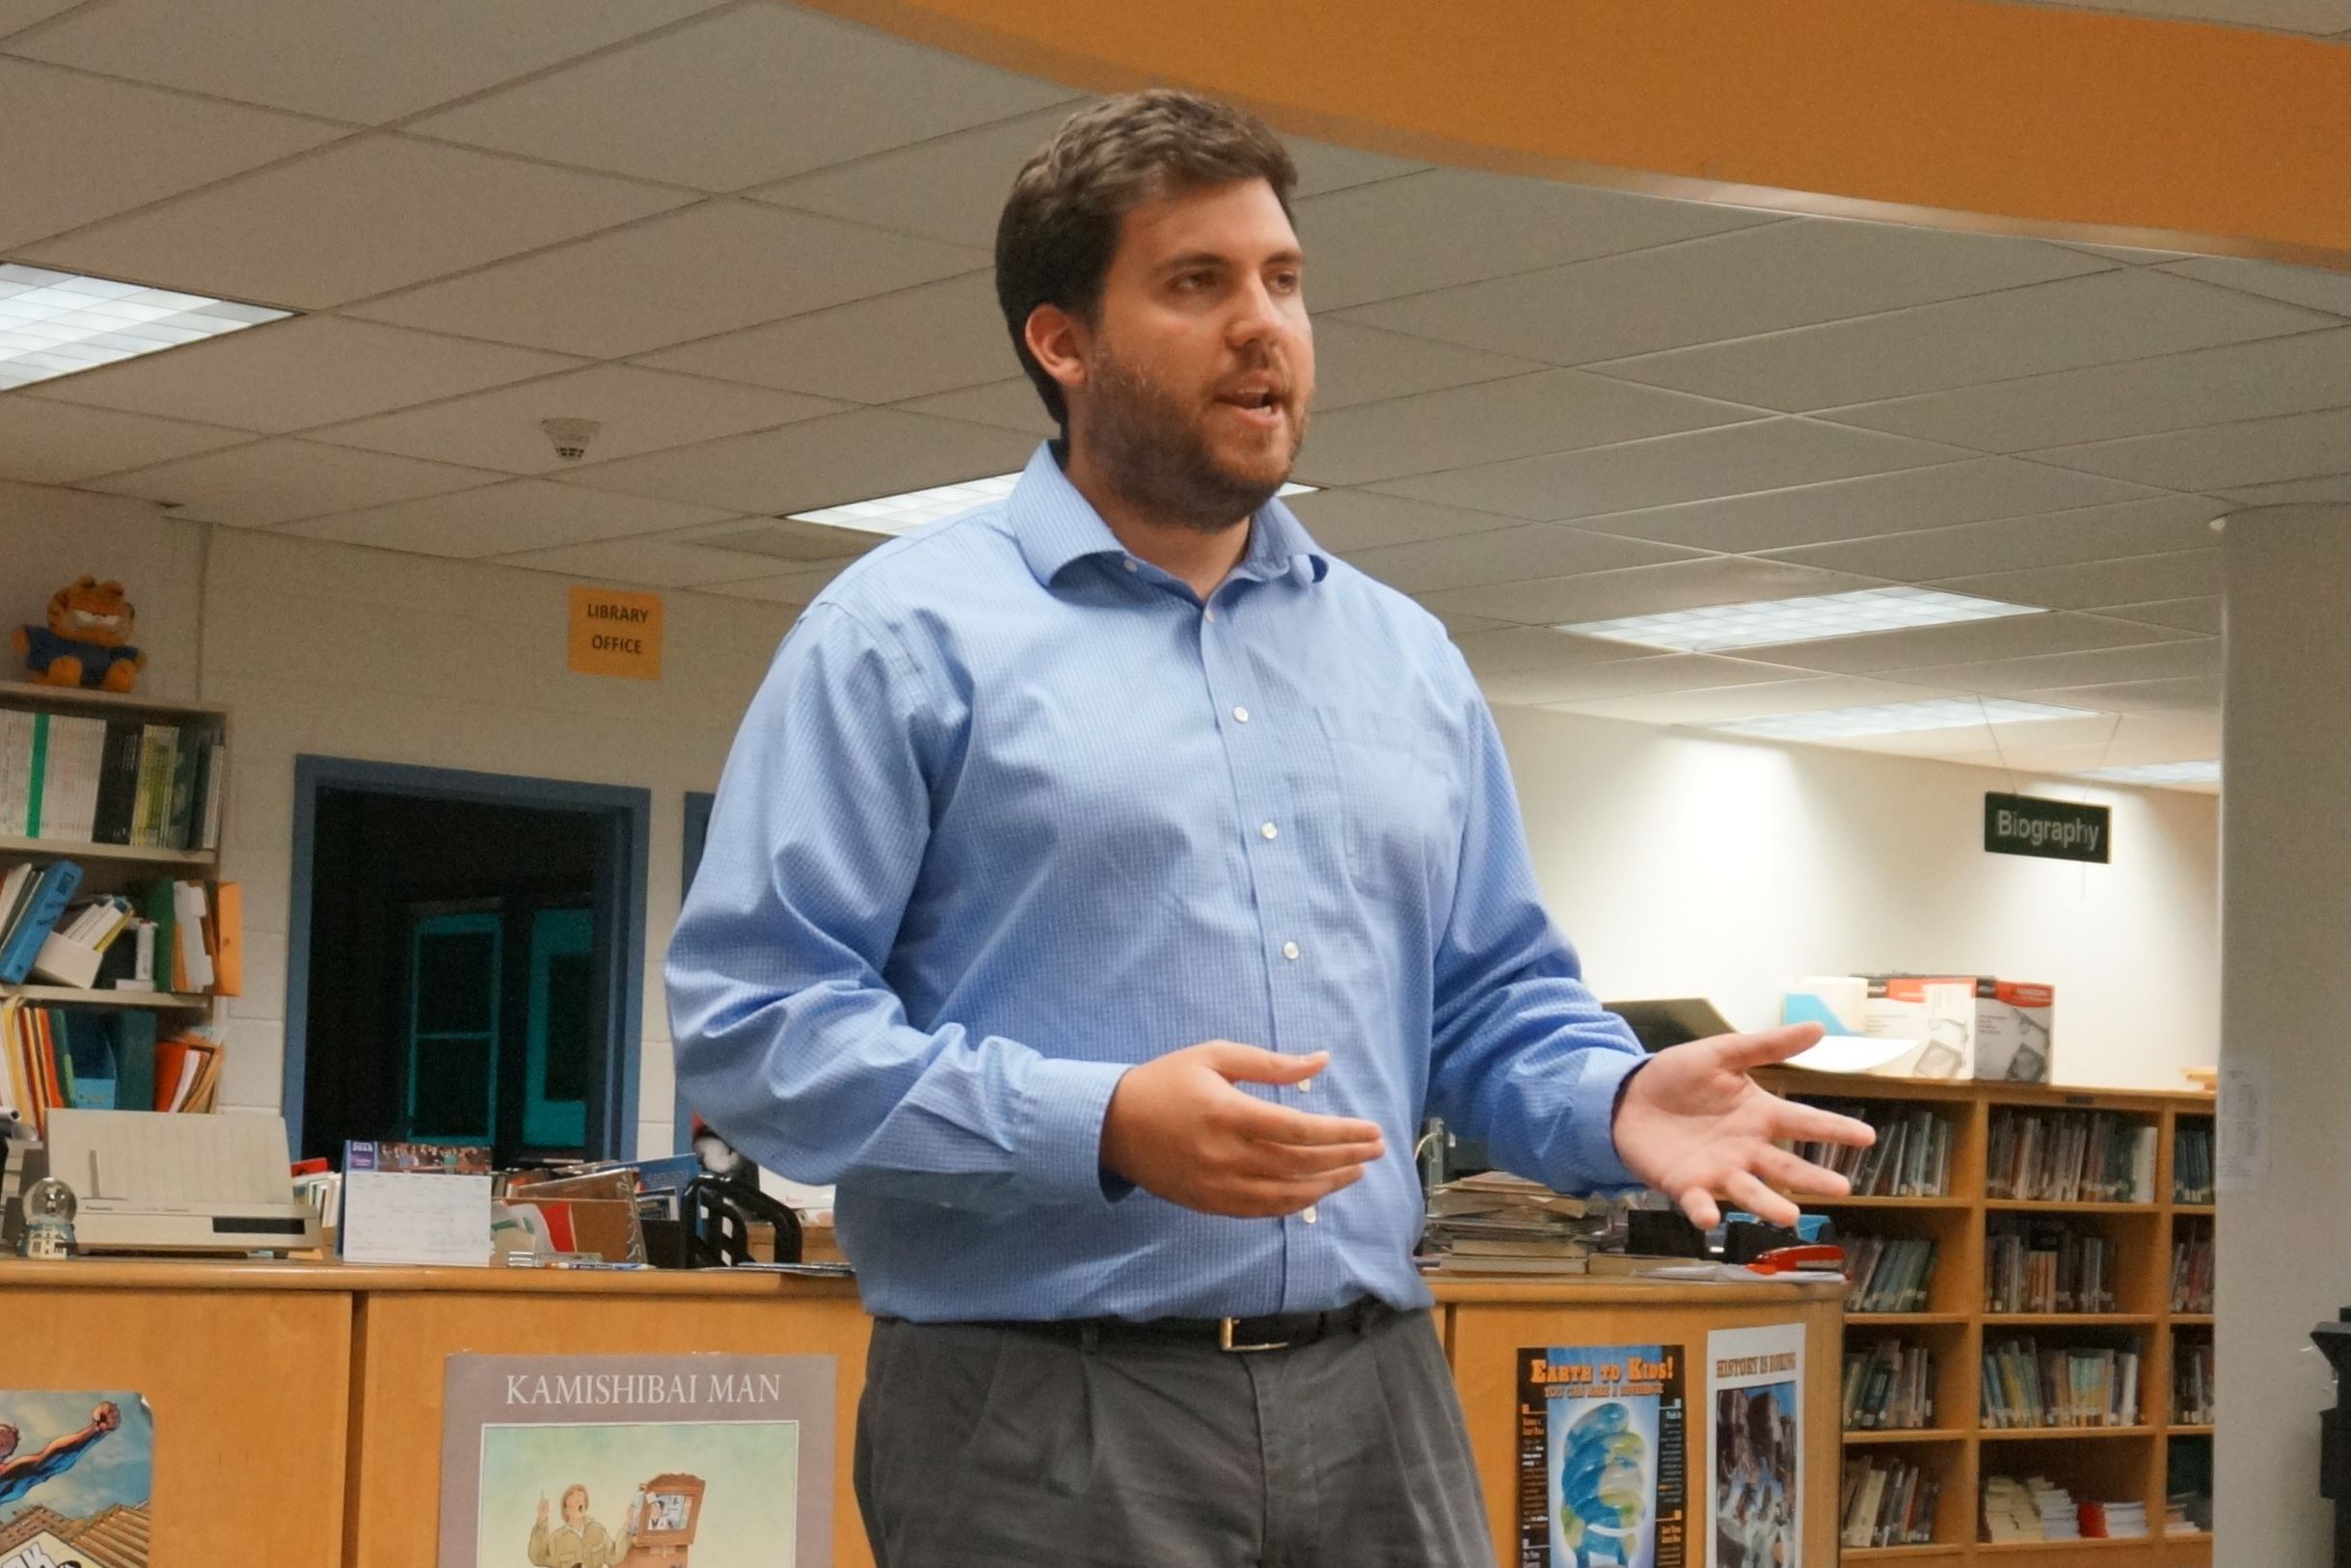 Hinkle law firm nj - Attorney Adam Wilson Explains Special Education Law At Pathways Seminar Credits Melissa Benno